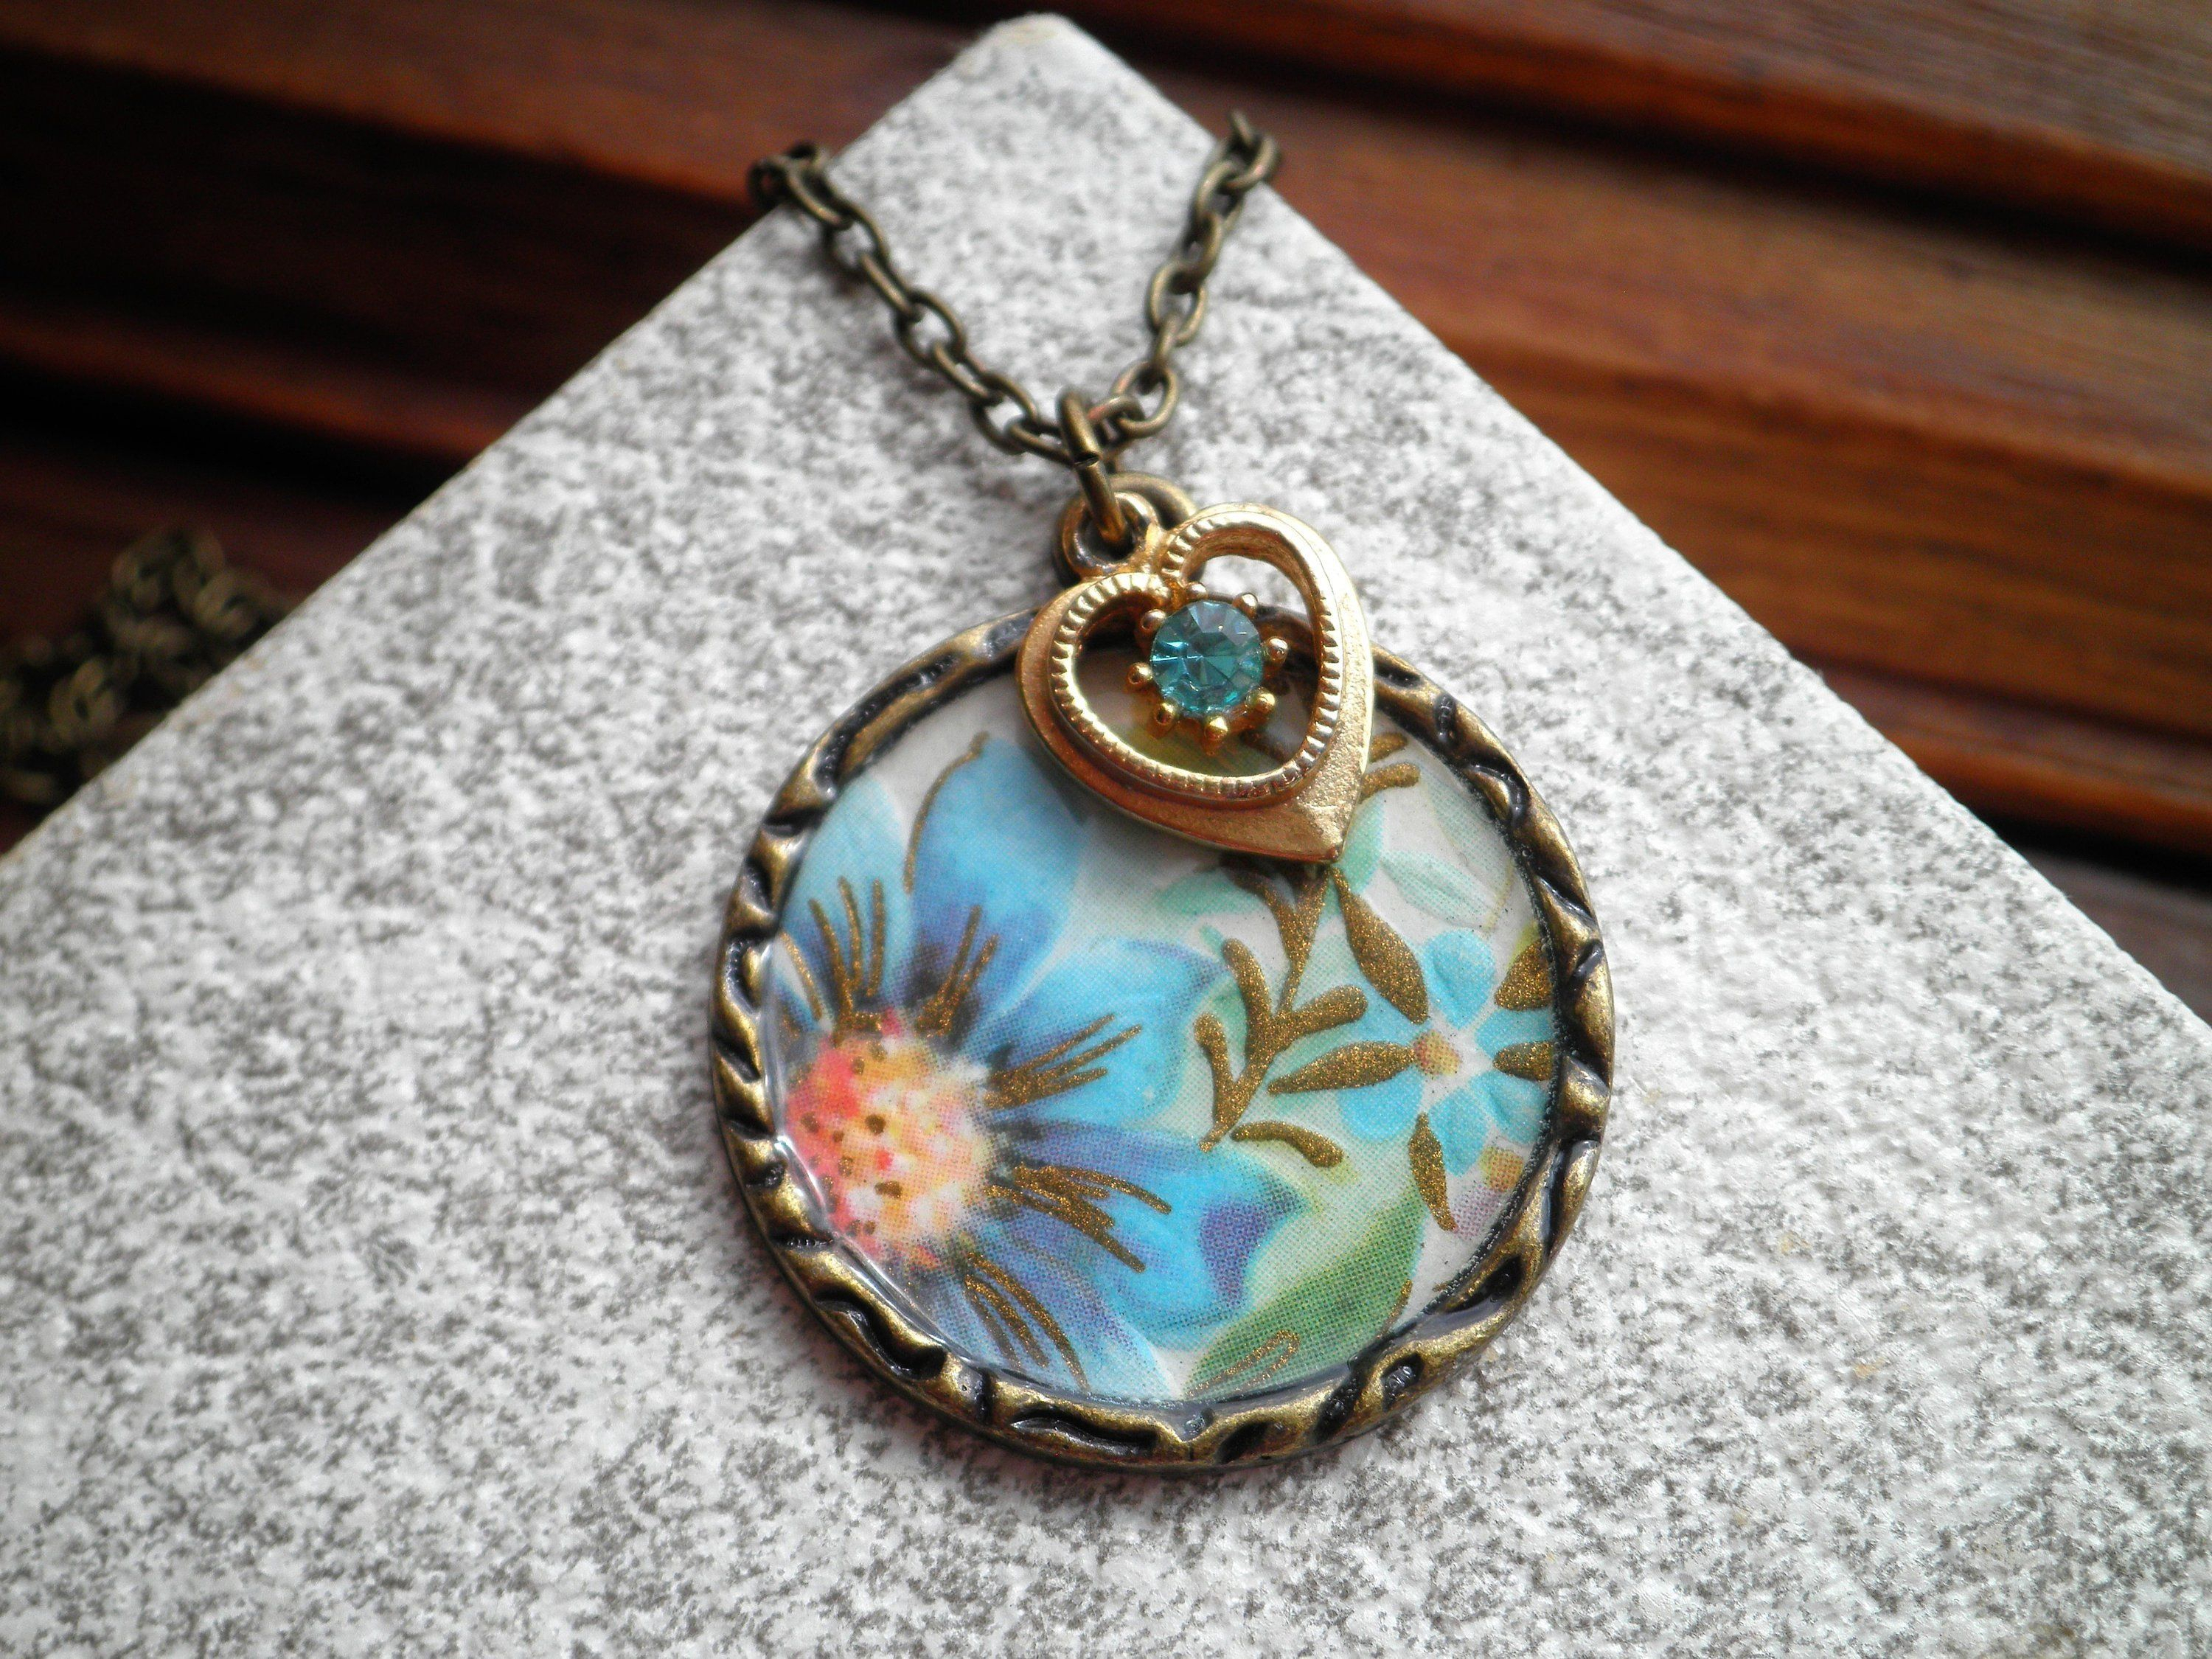 Vintage Flower & Heart Charm Necklace – Blue Flowers Floral Paper Throughout Most Recently Released Baby Blue Enamel Blue Heart Petite Locket Charm Necklaces (View 16 of 25)